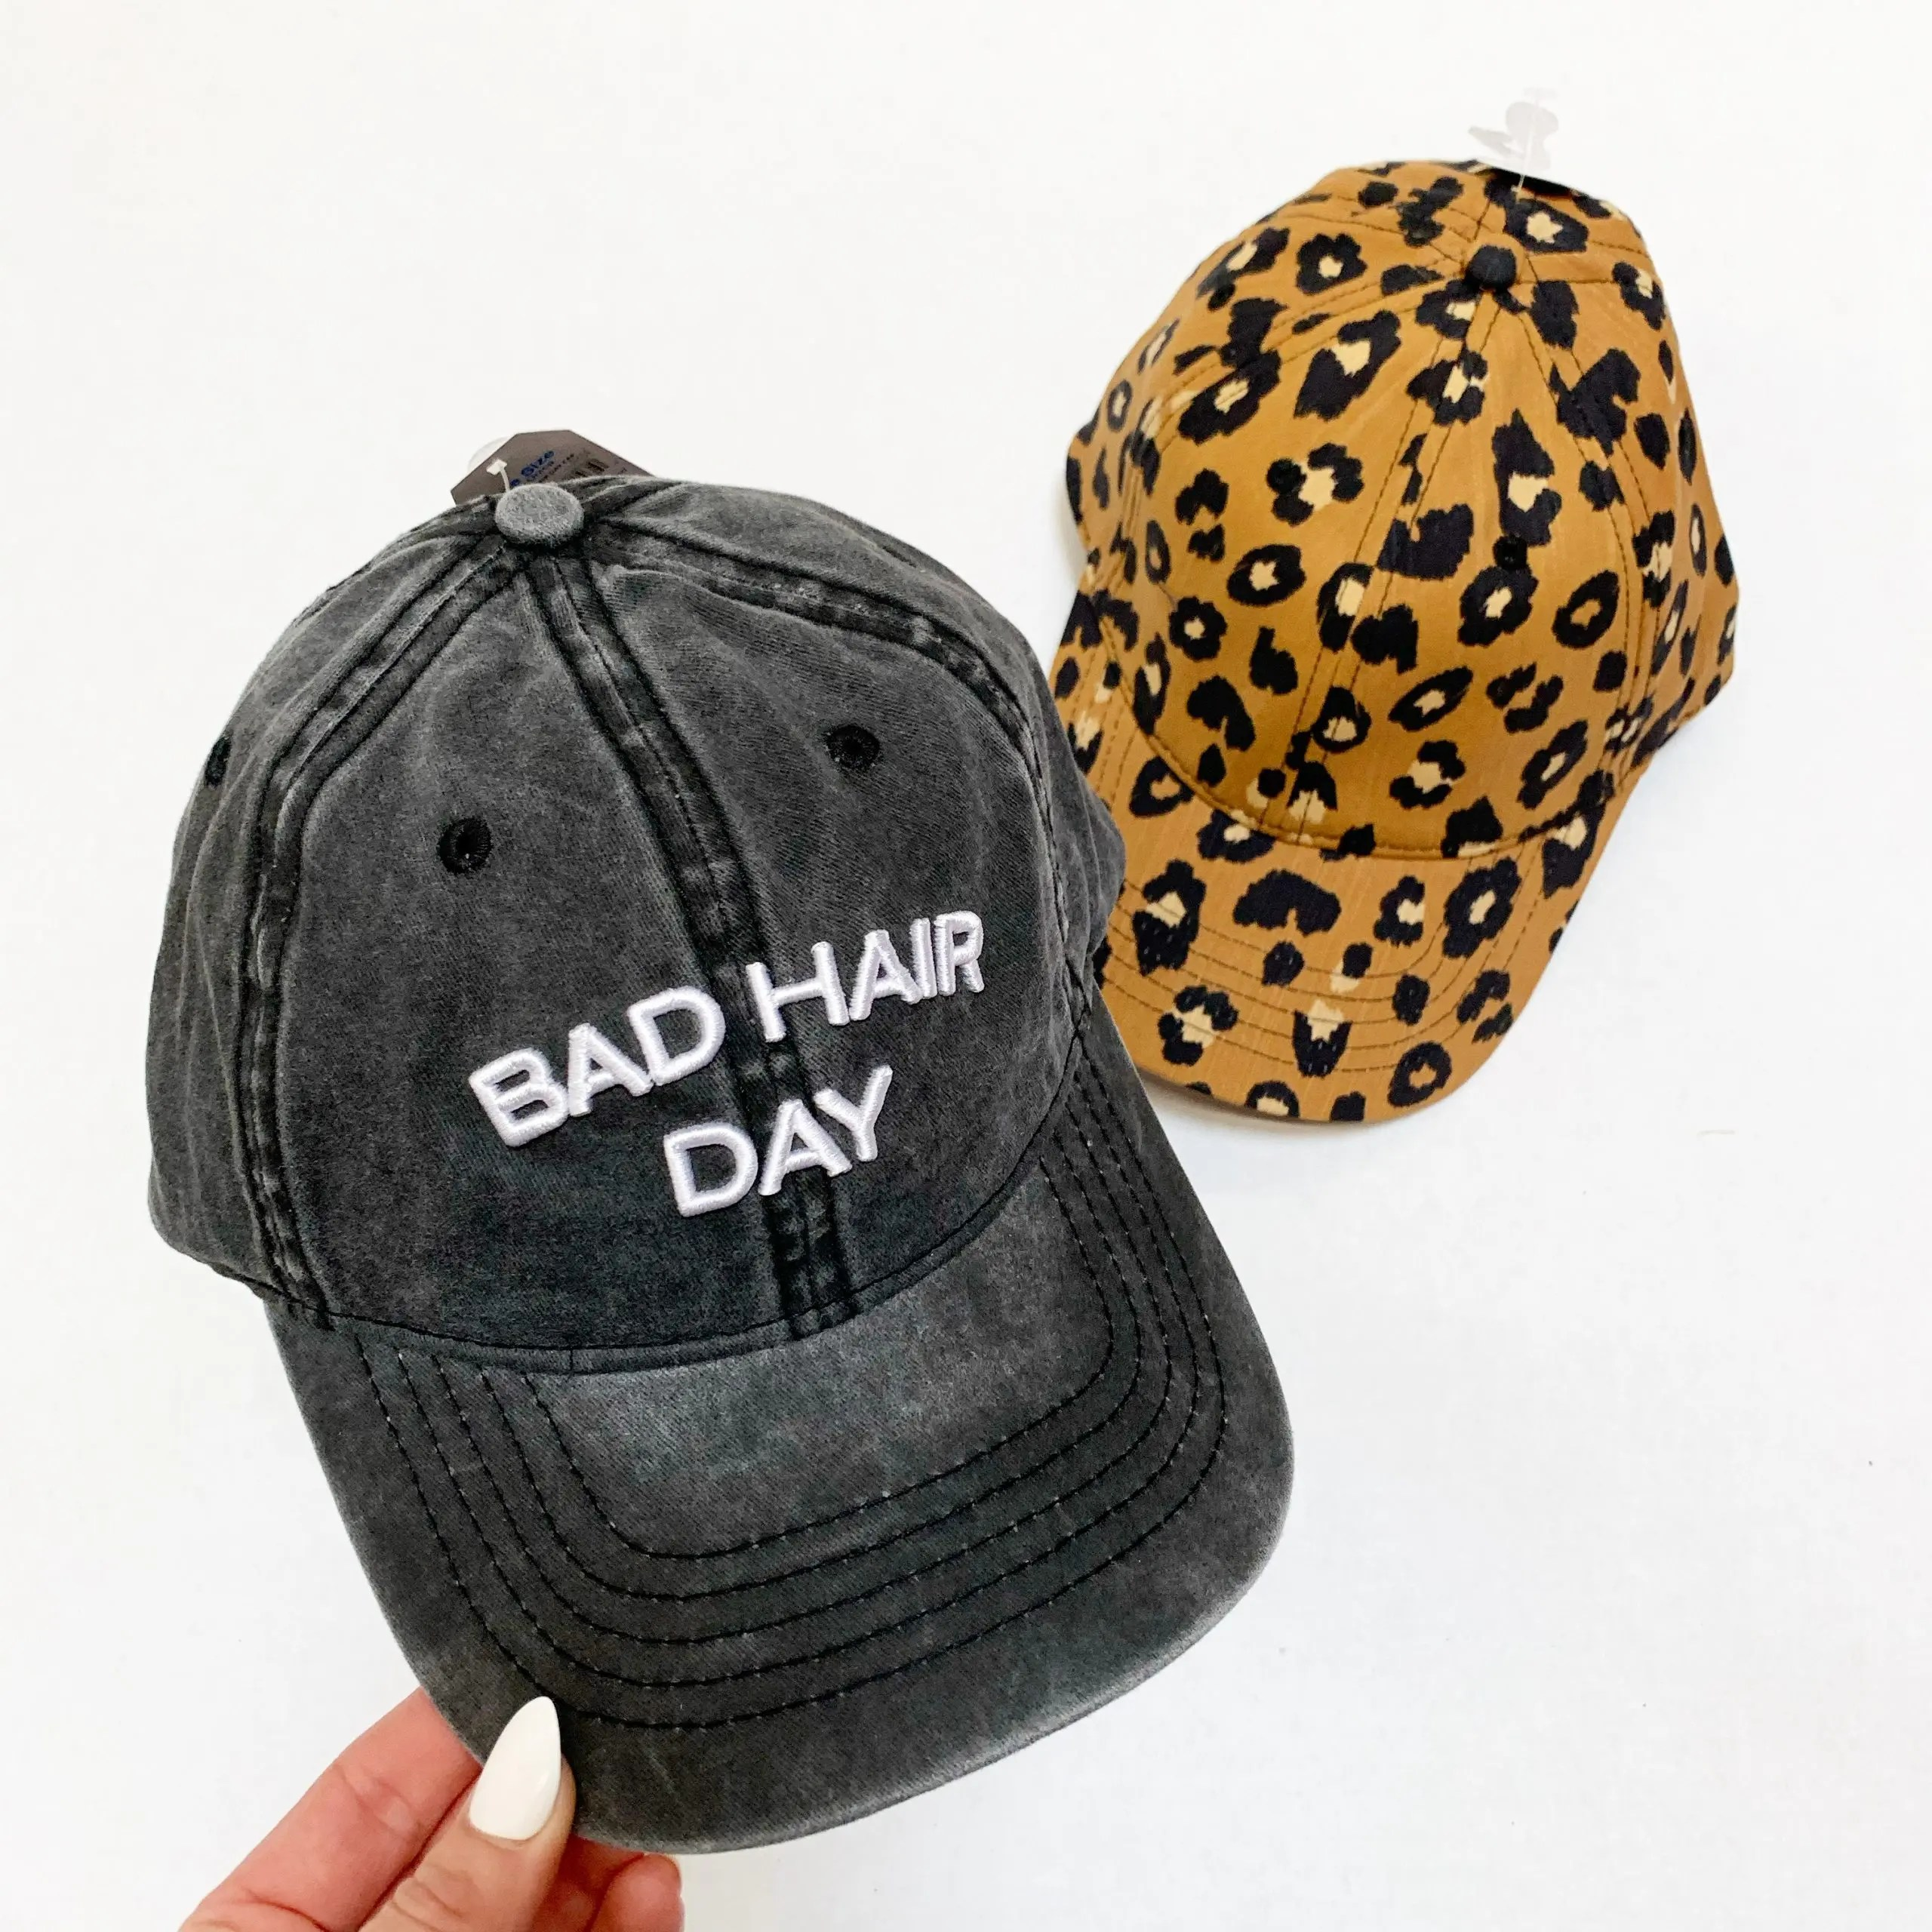 """time and tru """"bad hair day"""" cap and leopard print cap"""